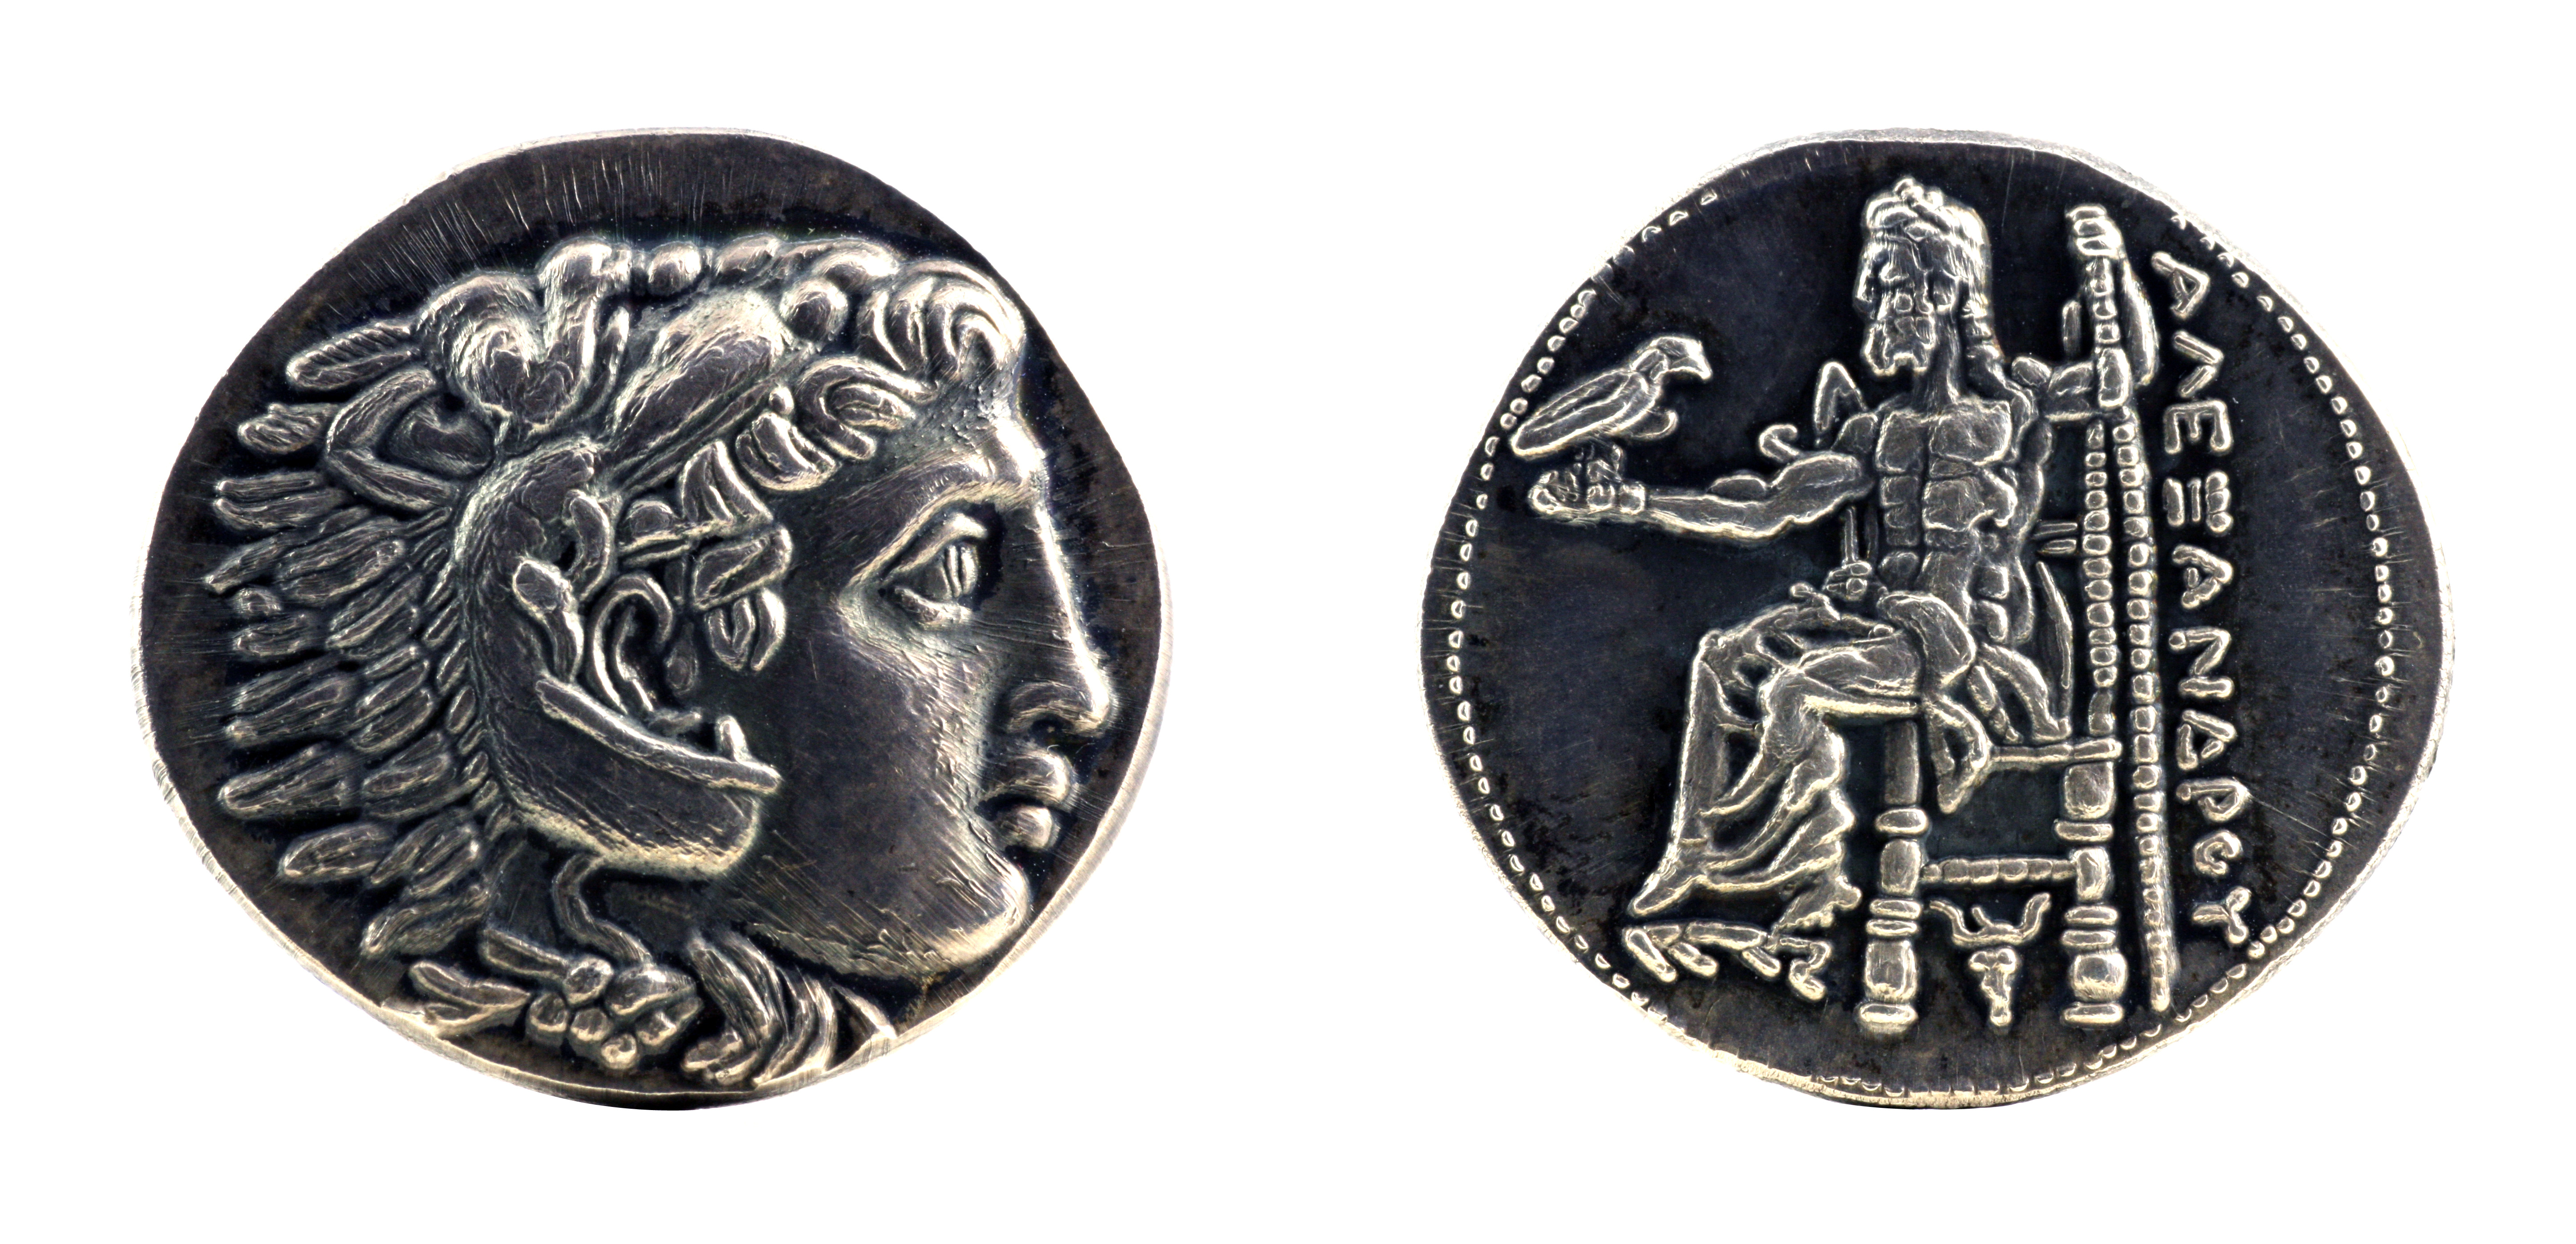 Greek silver tetradrachm from Alexander the Great showing Hercules wearing lion skin at obverse and Zeus at reverse, dated 323-315 BC. Image courtesy Adobe Stock.